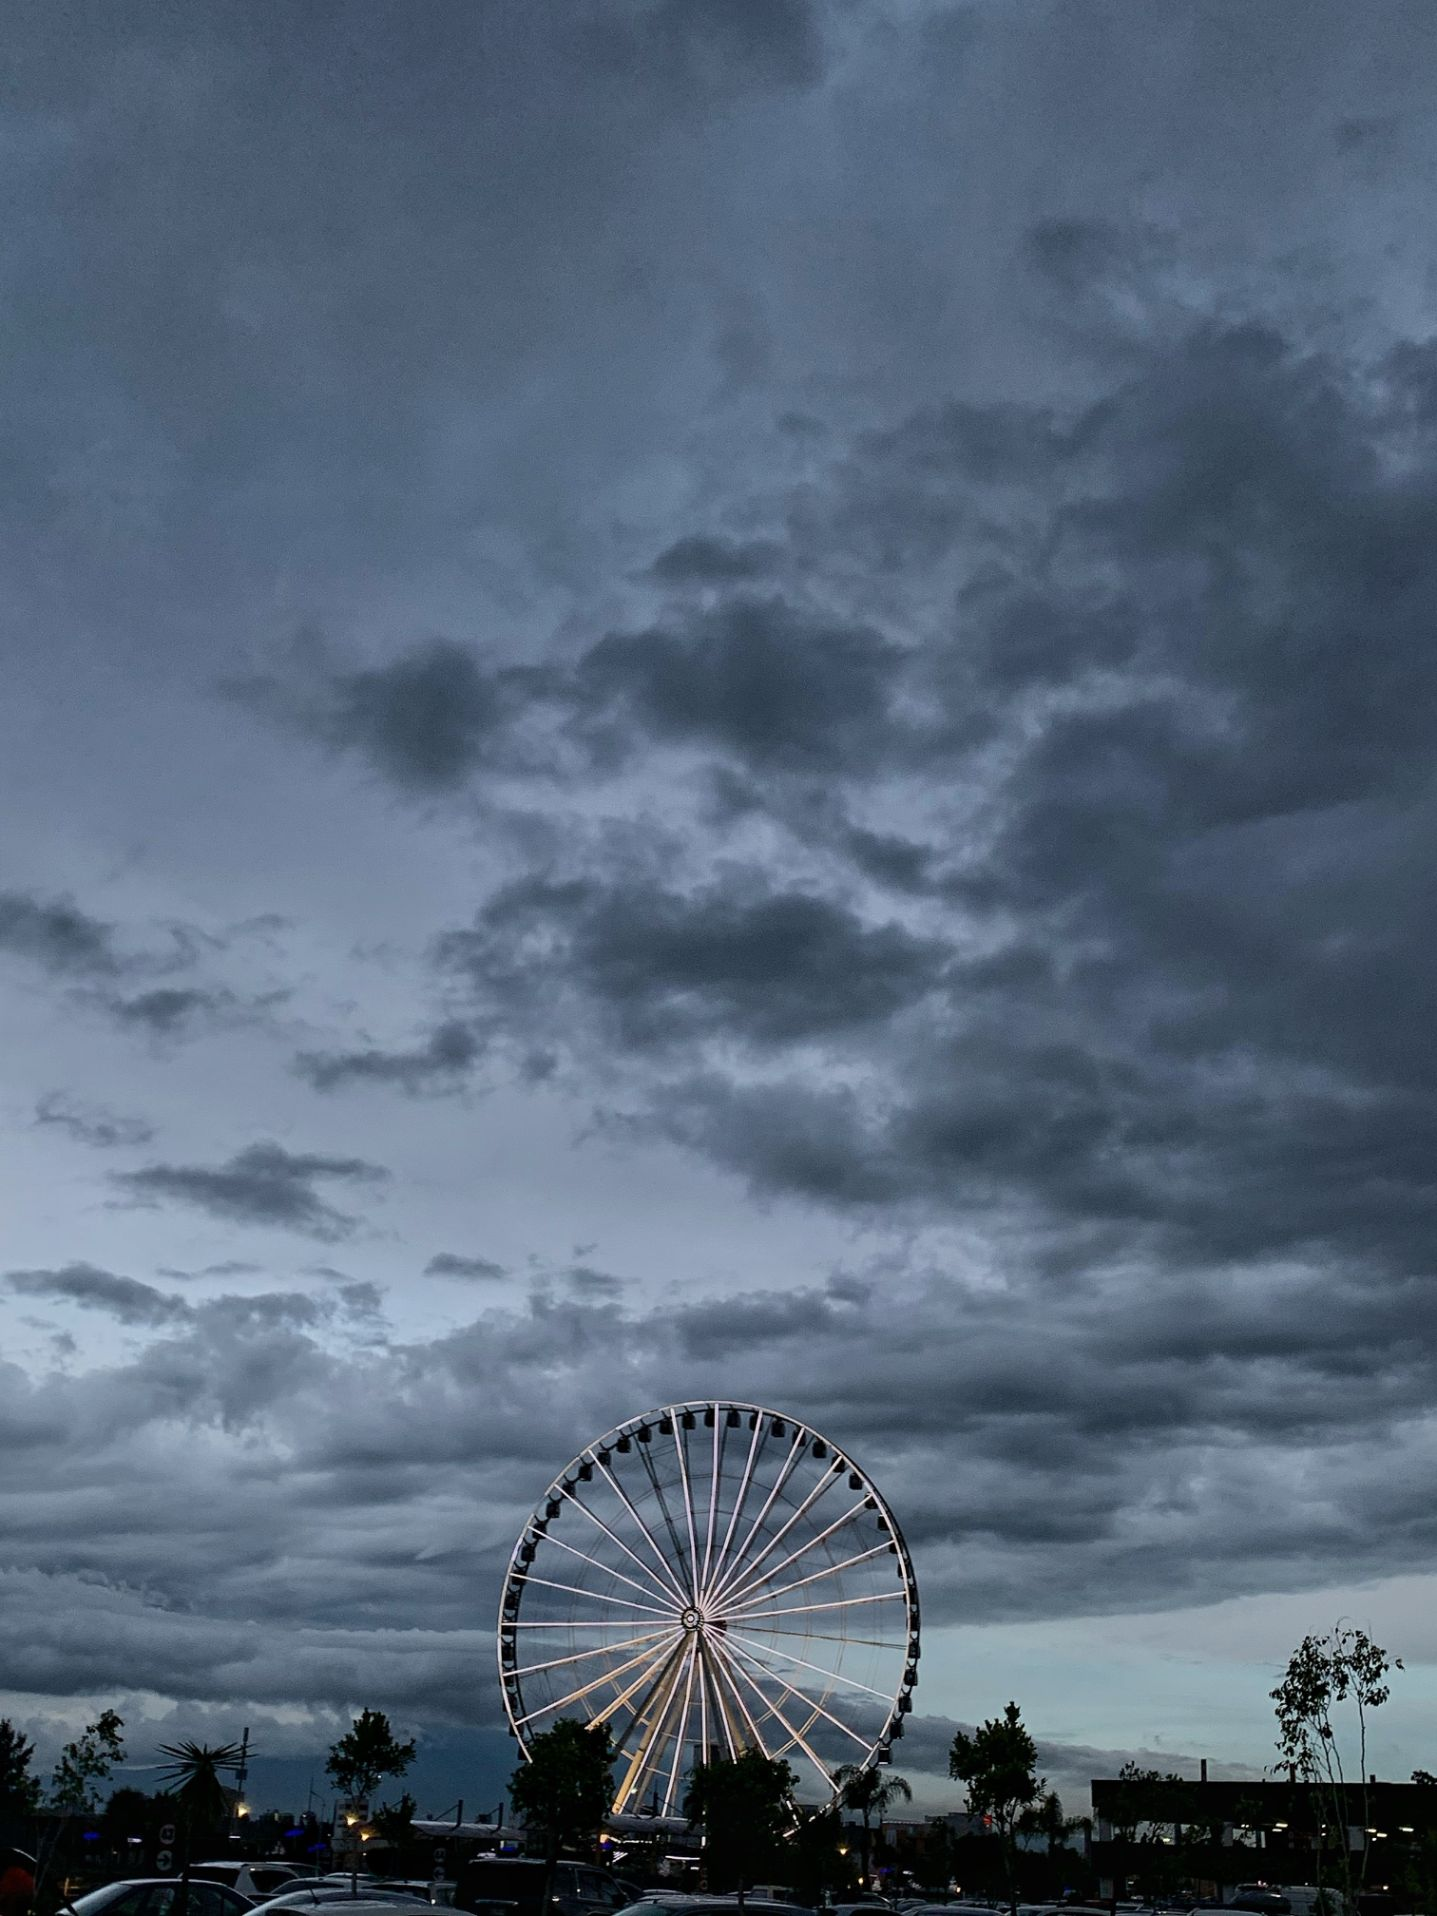 small ferris wheel and expansive gray night sky